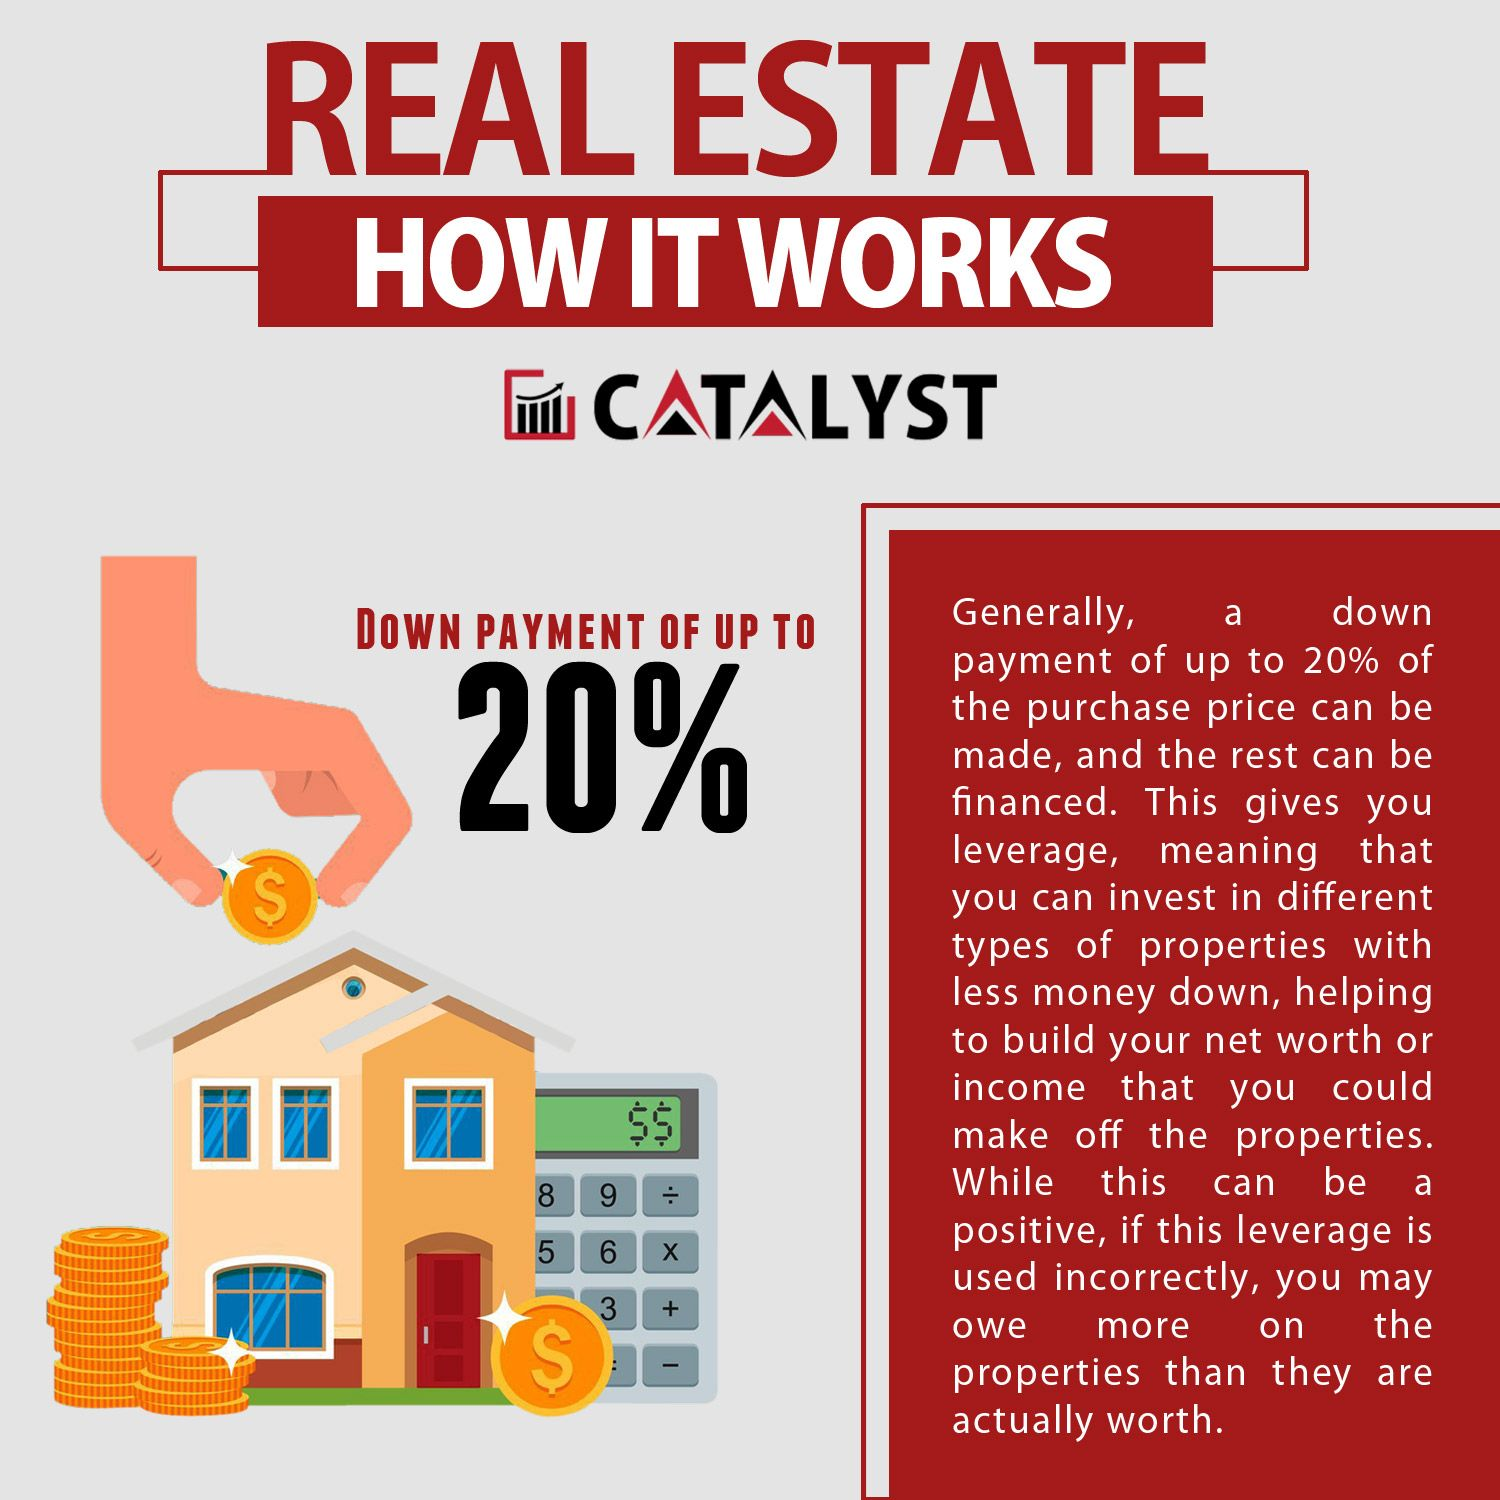 Real Estate Investment - How it Works